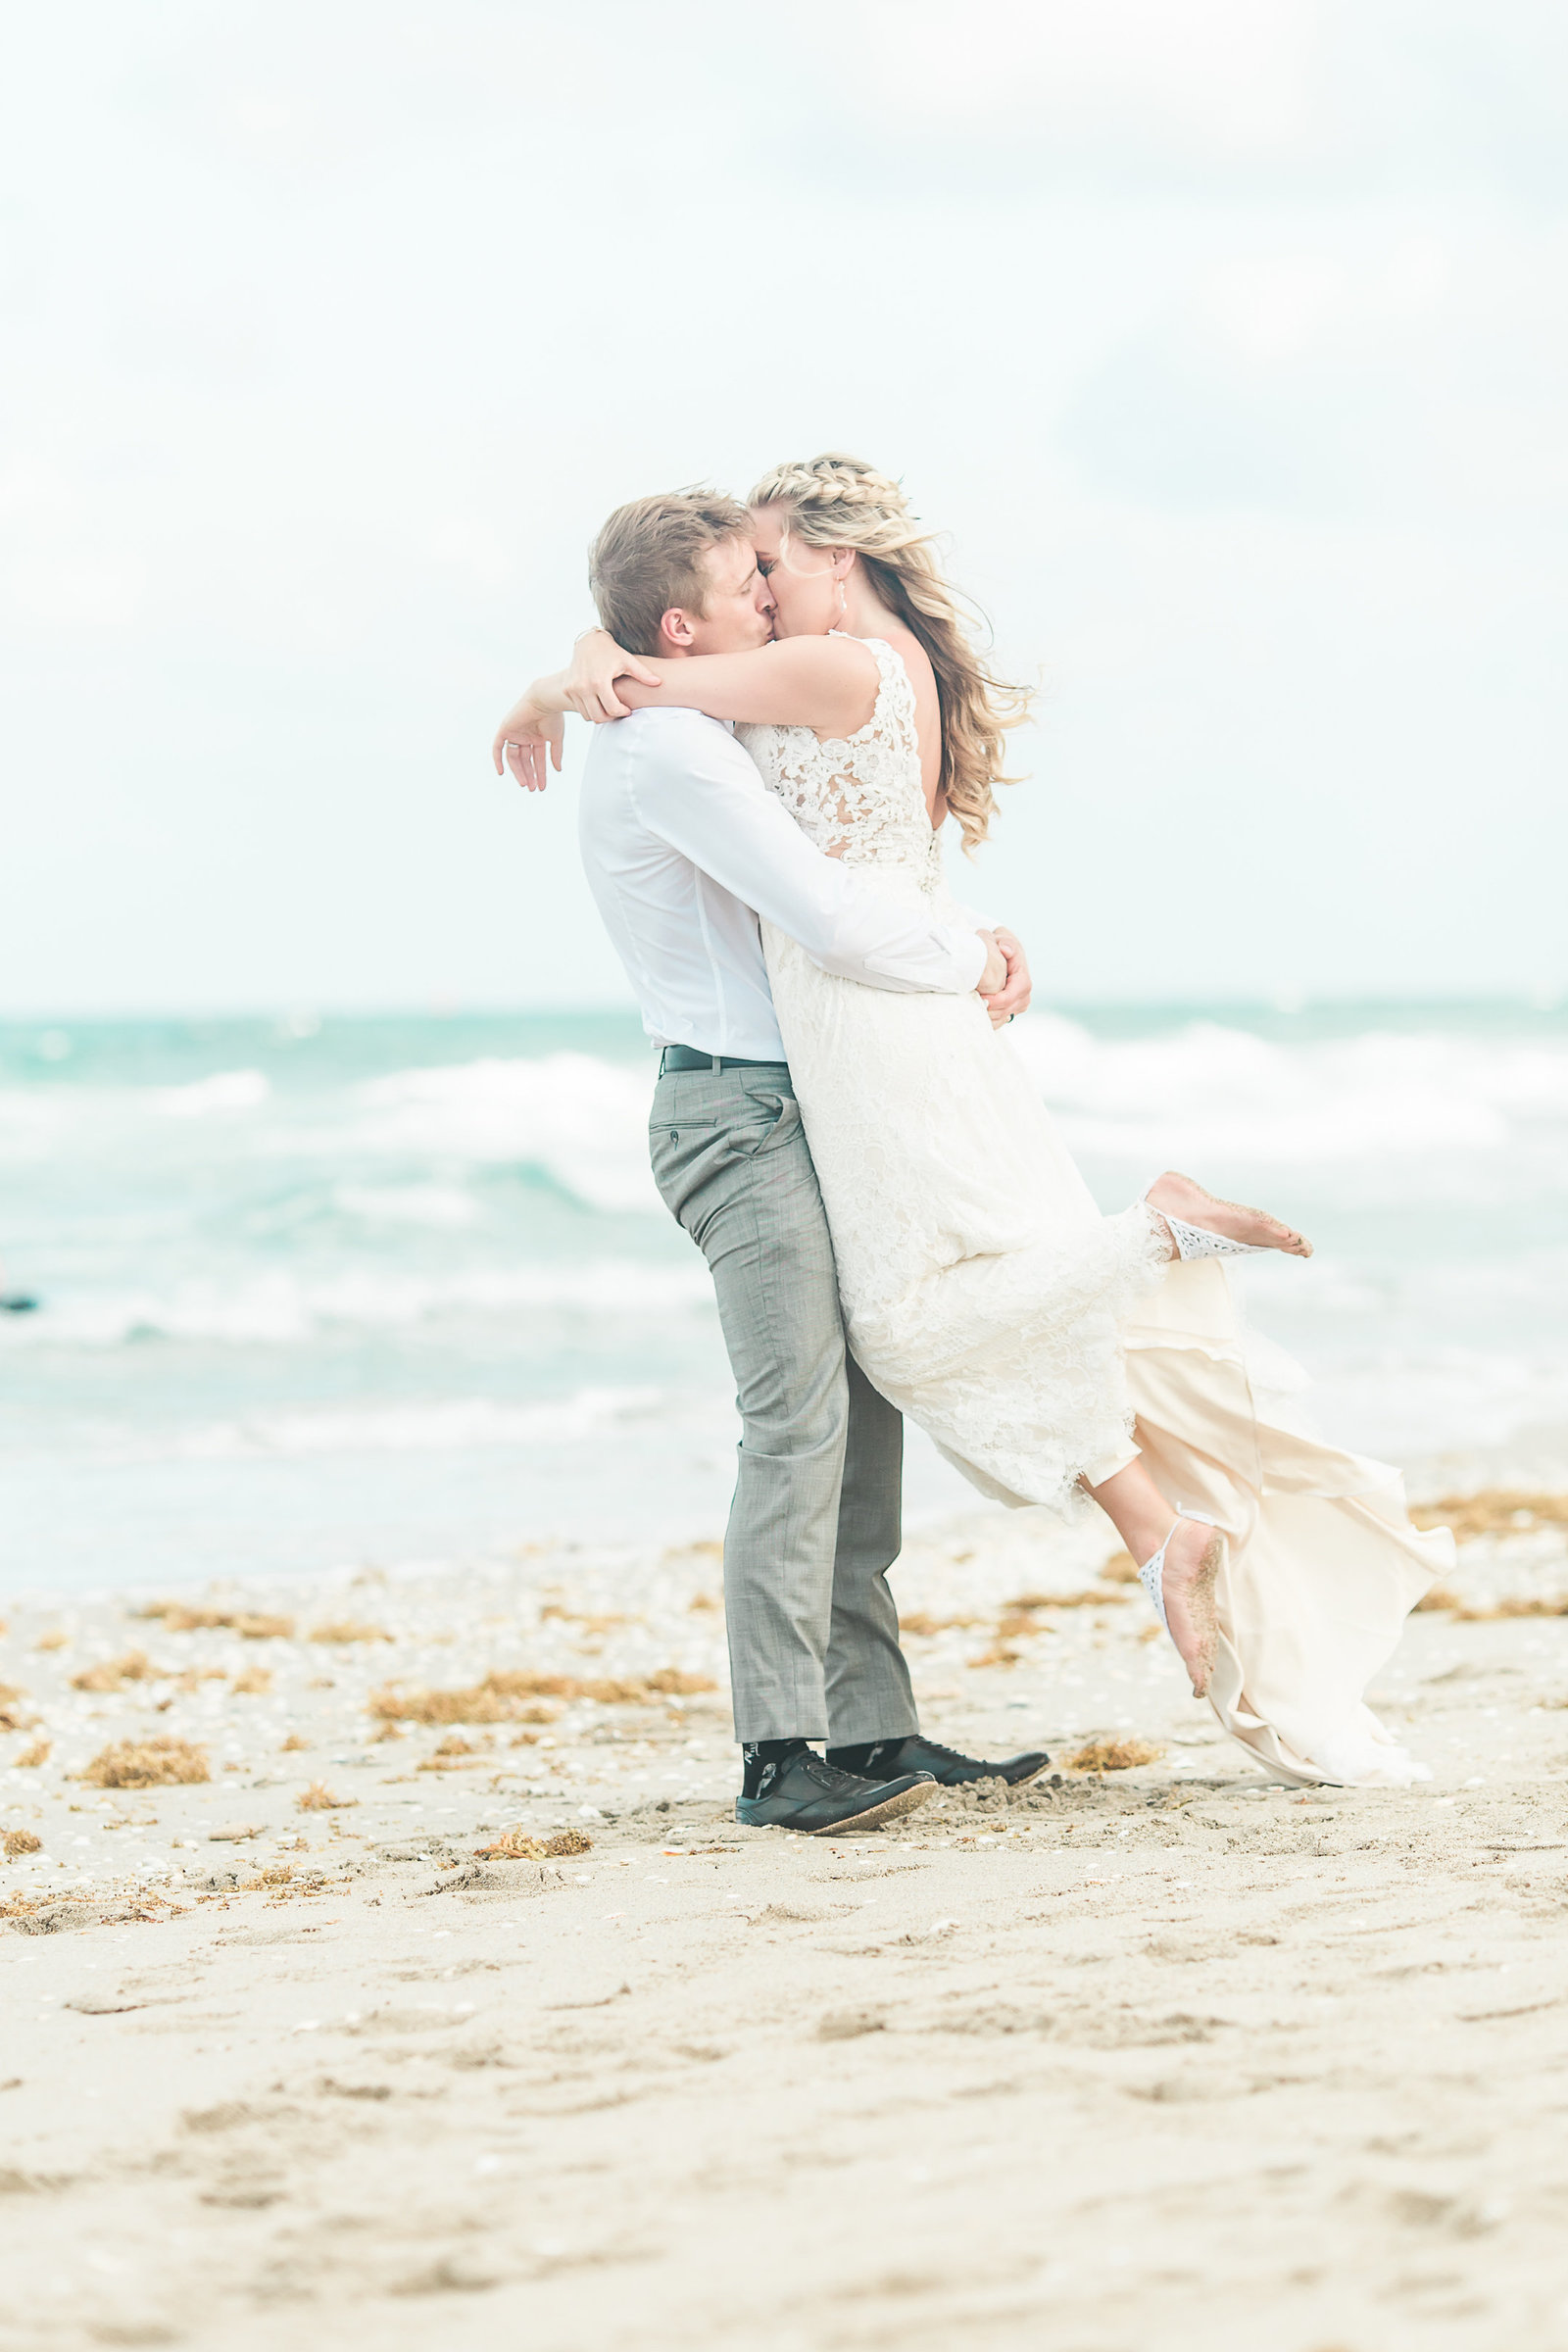 Beach Kiss Wedding Couple- Hilton Singer Island Wedding - Palm Beach Wedding Photography by Palm Beach Photography, Inc.